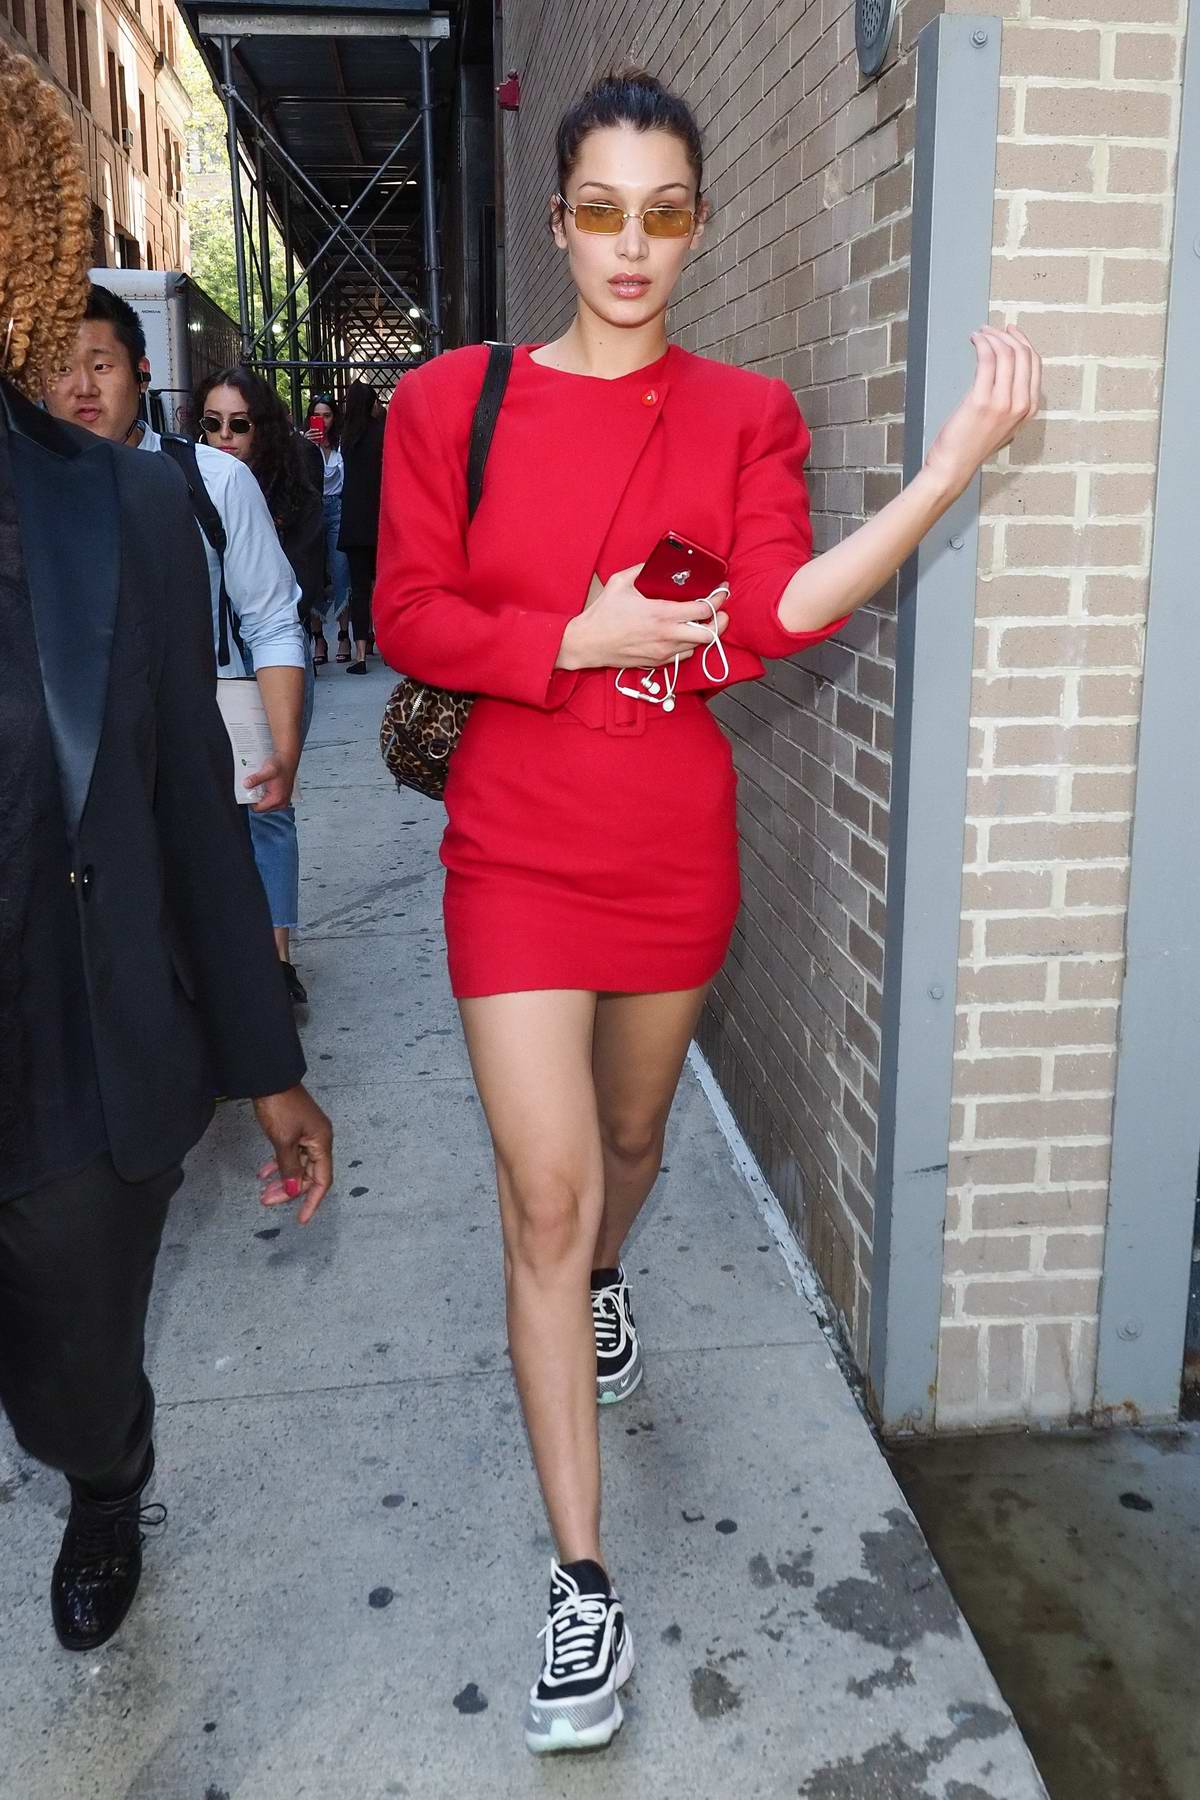 Bella Hadid in a short red dress leaves work during New York Fashion Week